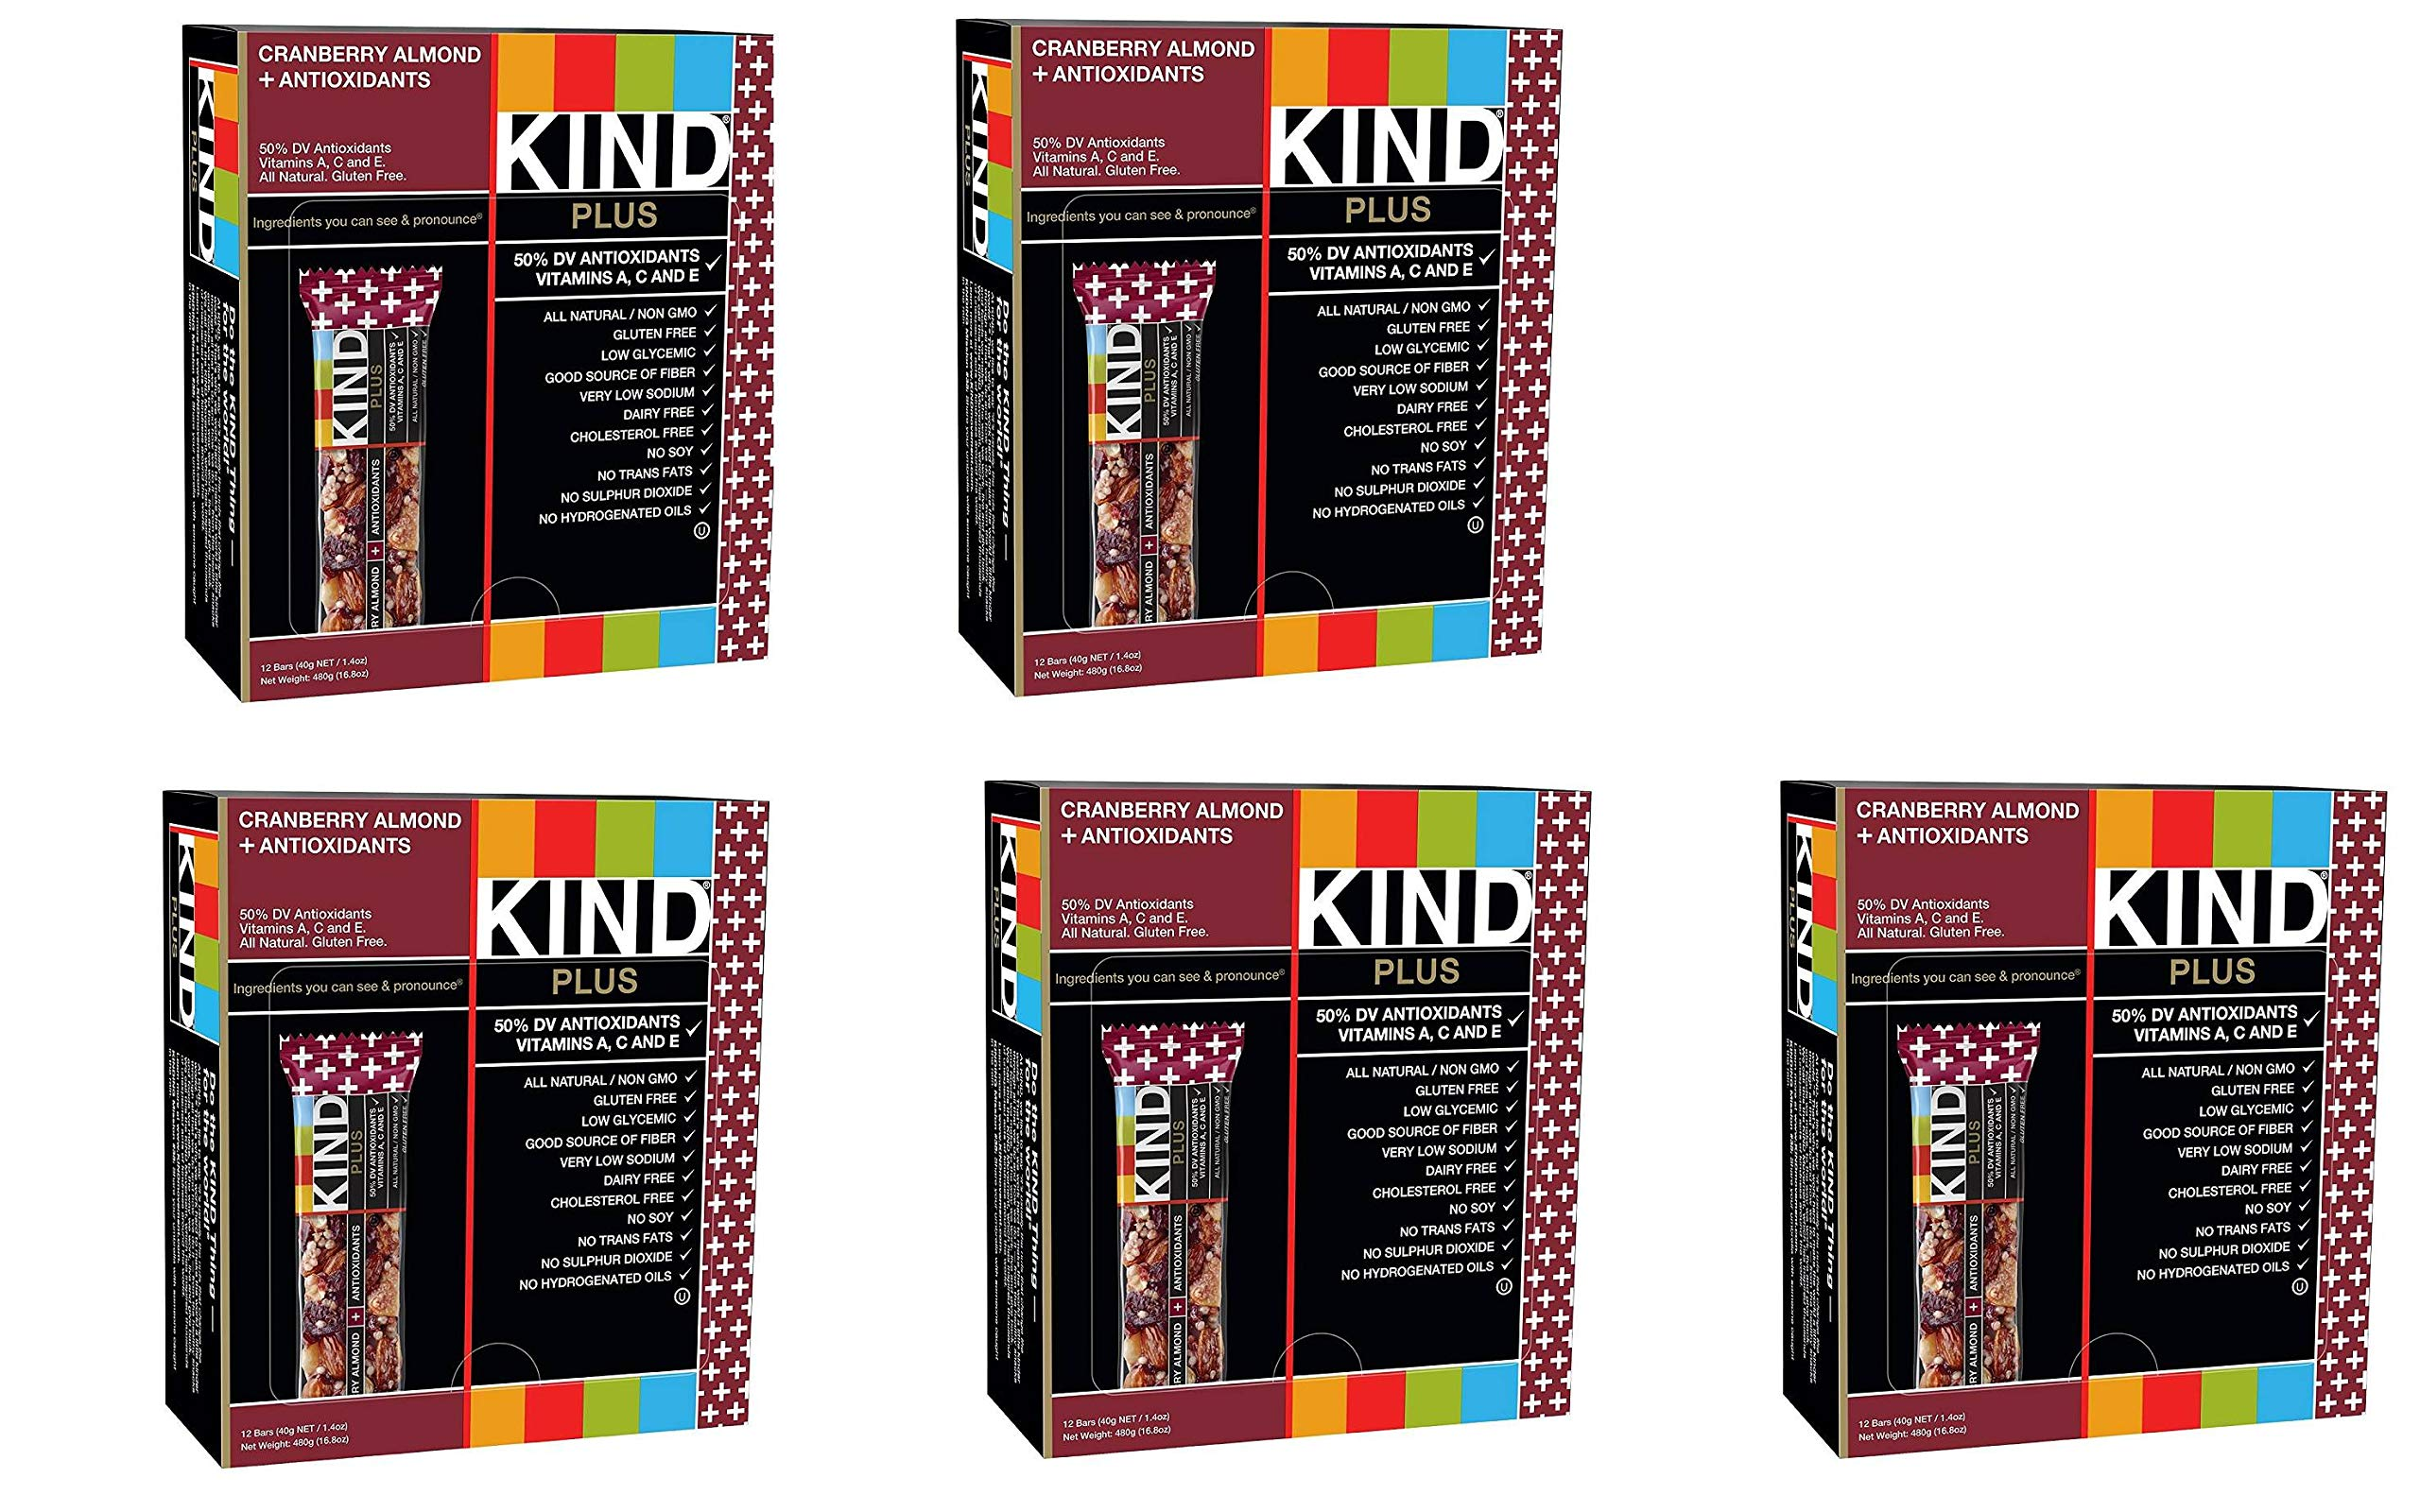 KIND Bars, Cranberry Almond plus Antioxidants with Macadamia Nuts, Gluten Free, Low Sugar, 1.4oz, 60 Bars by KIND (Image #1)